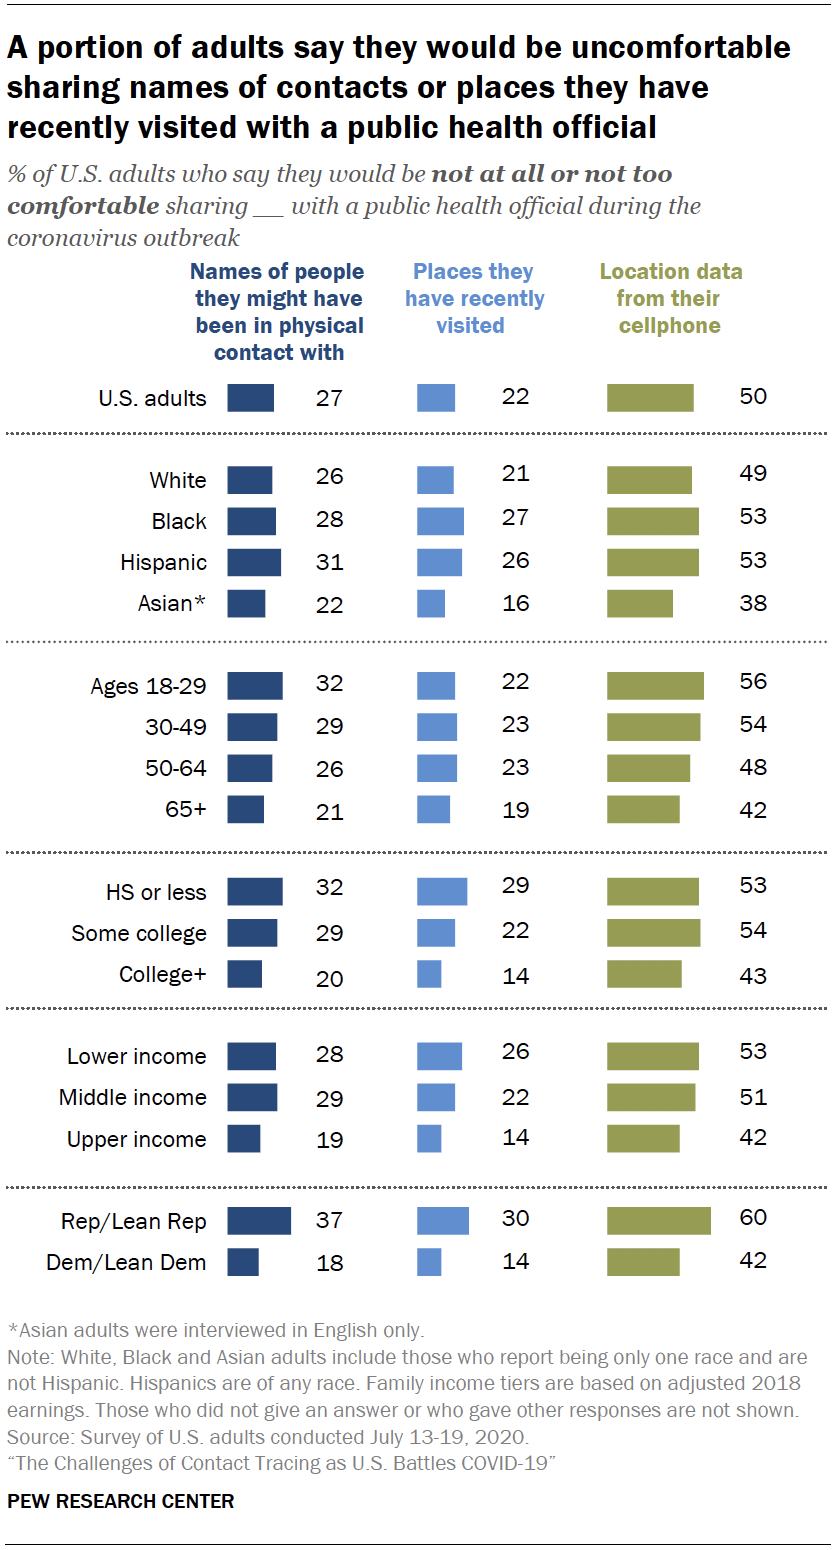 Chart shows a portion of adults say they would be uncomfortable sharing names of contacts or places they have recently visited with a public health official